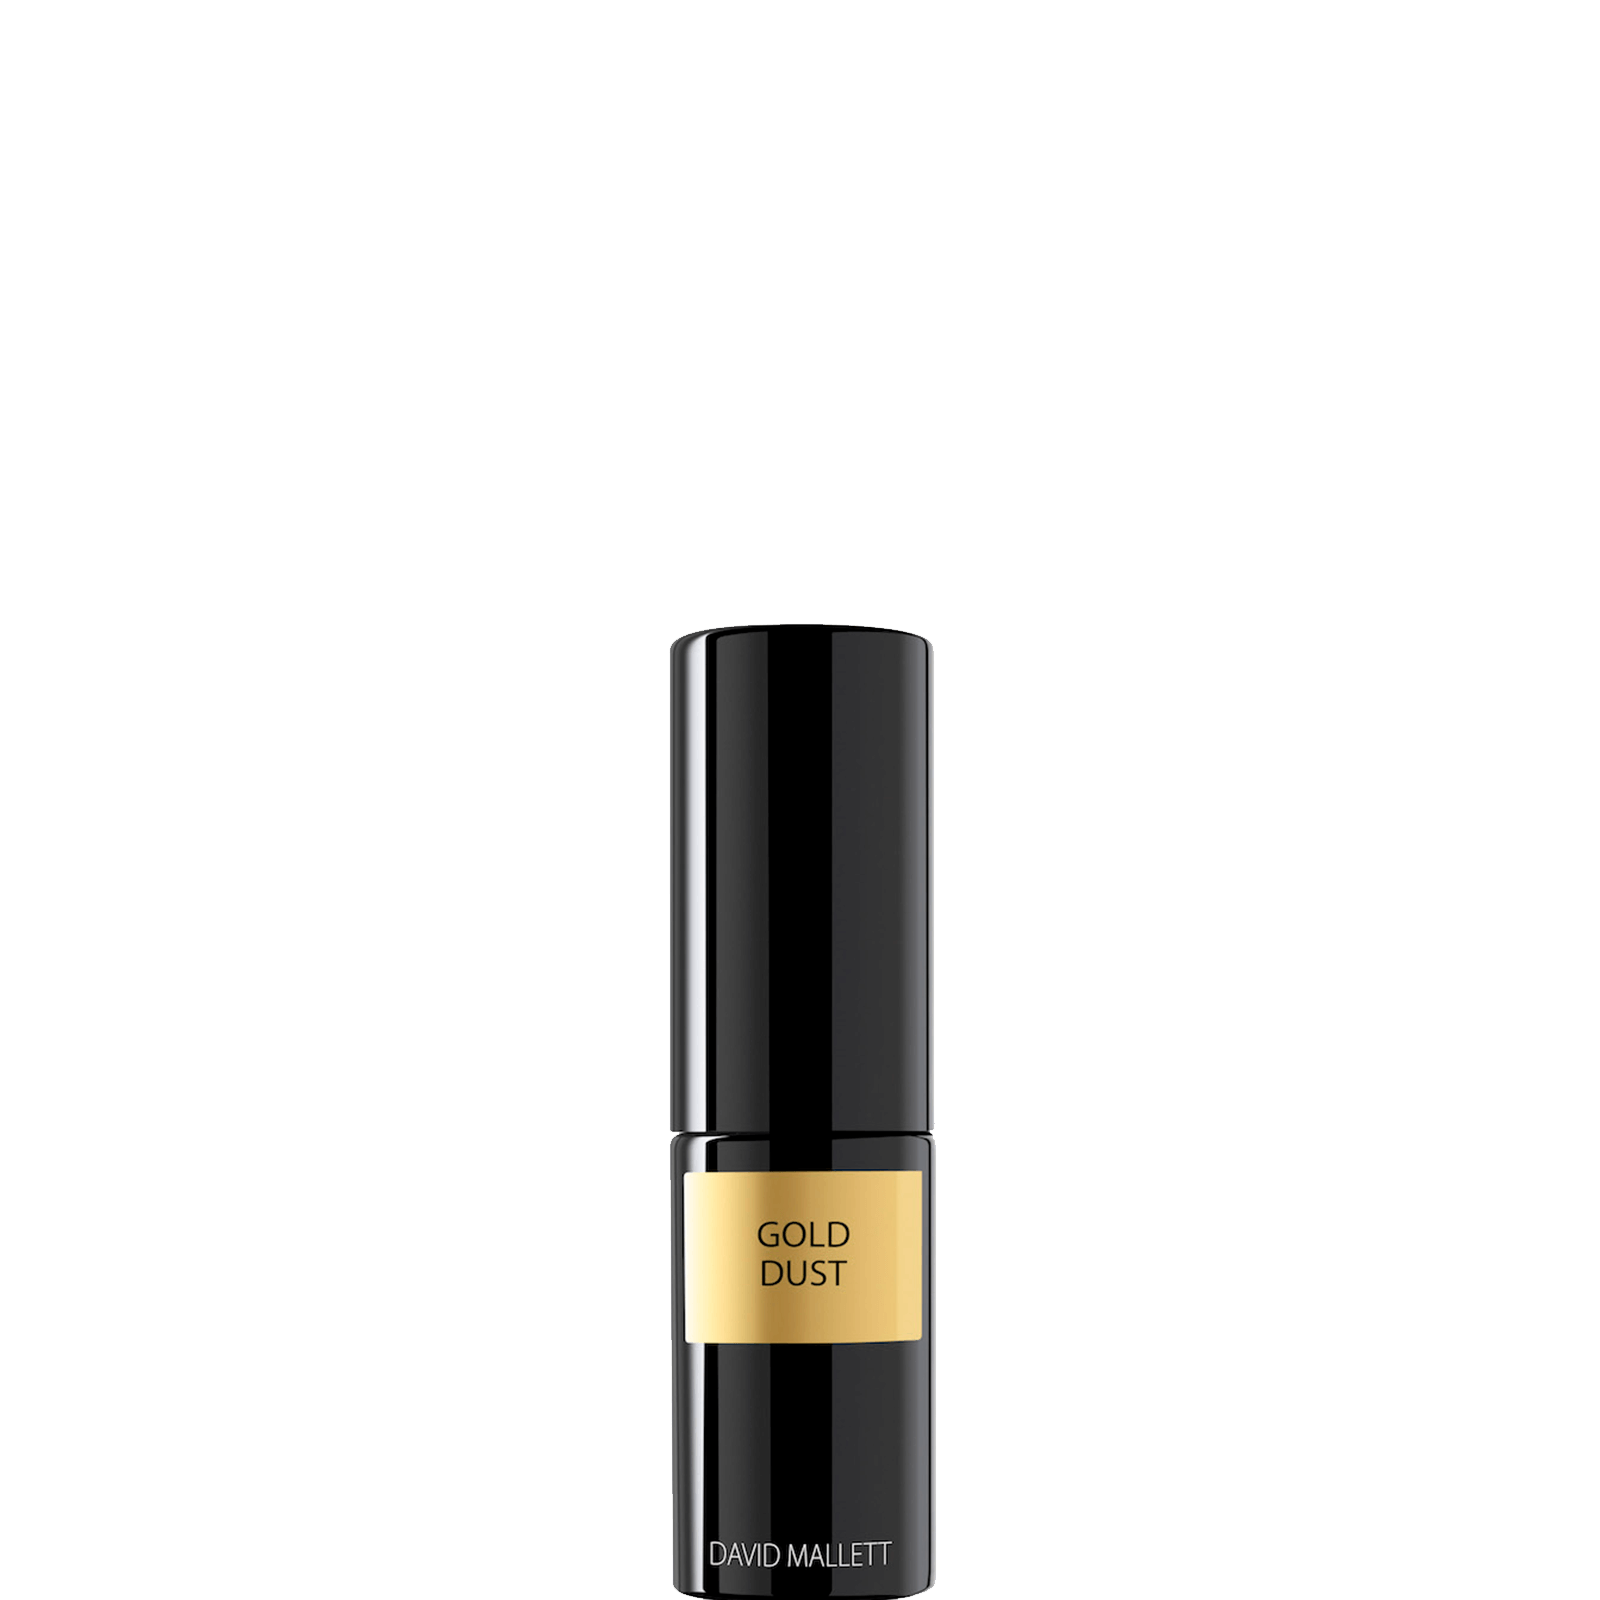 Image produit: Gold Dust